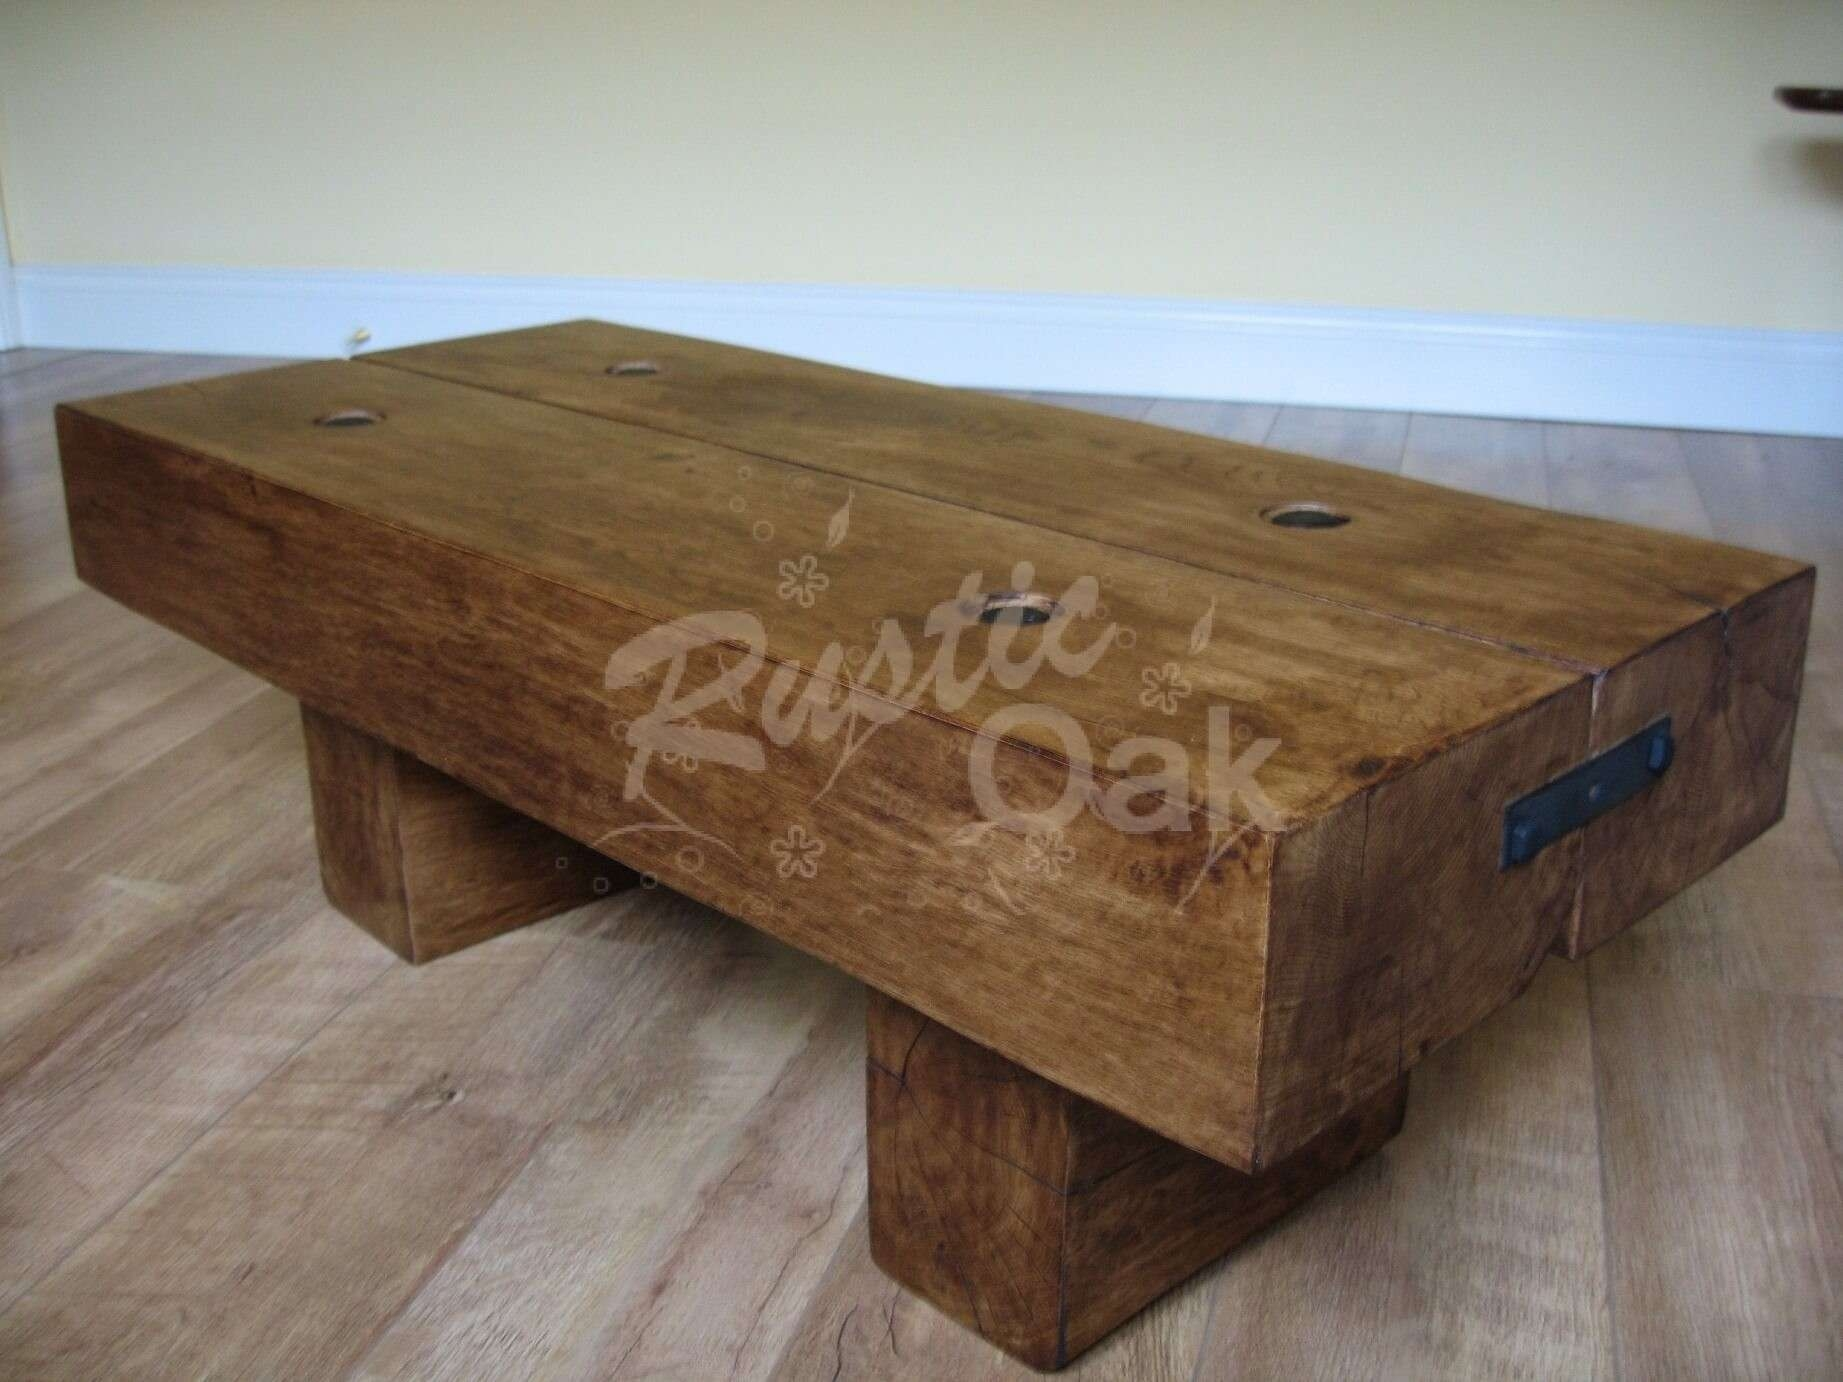 Most Recent Solid Oak Beam Coffee Table Inside Coffee Tables : Contemporary Oak Coffee Table Argos Coffee Table (View 9 of 20)